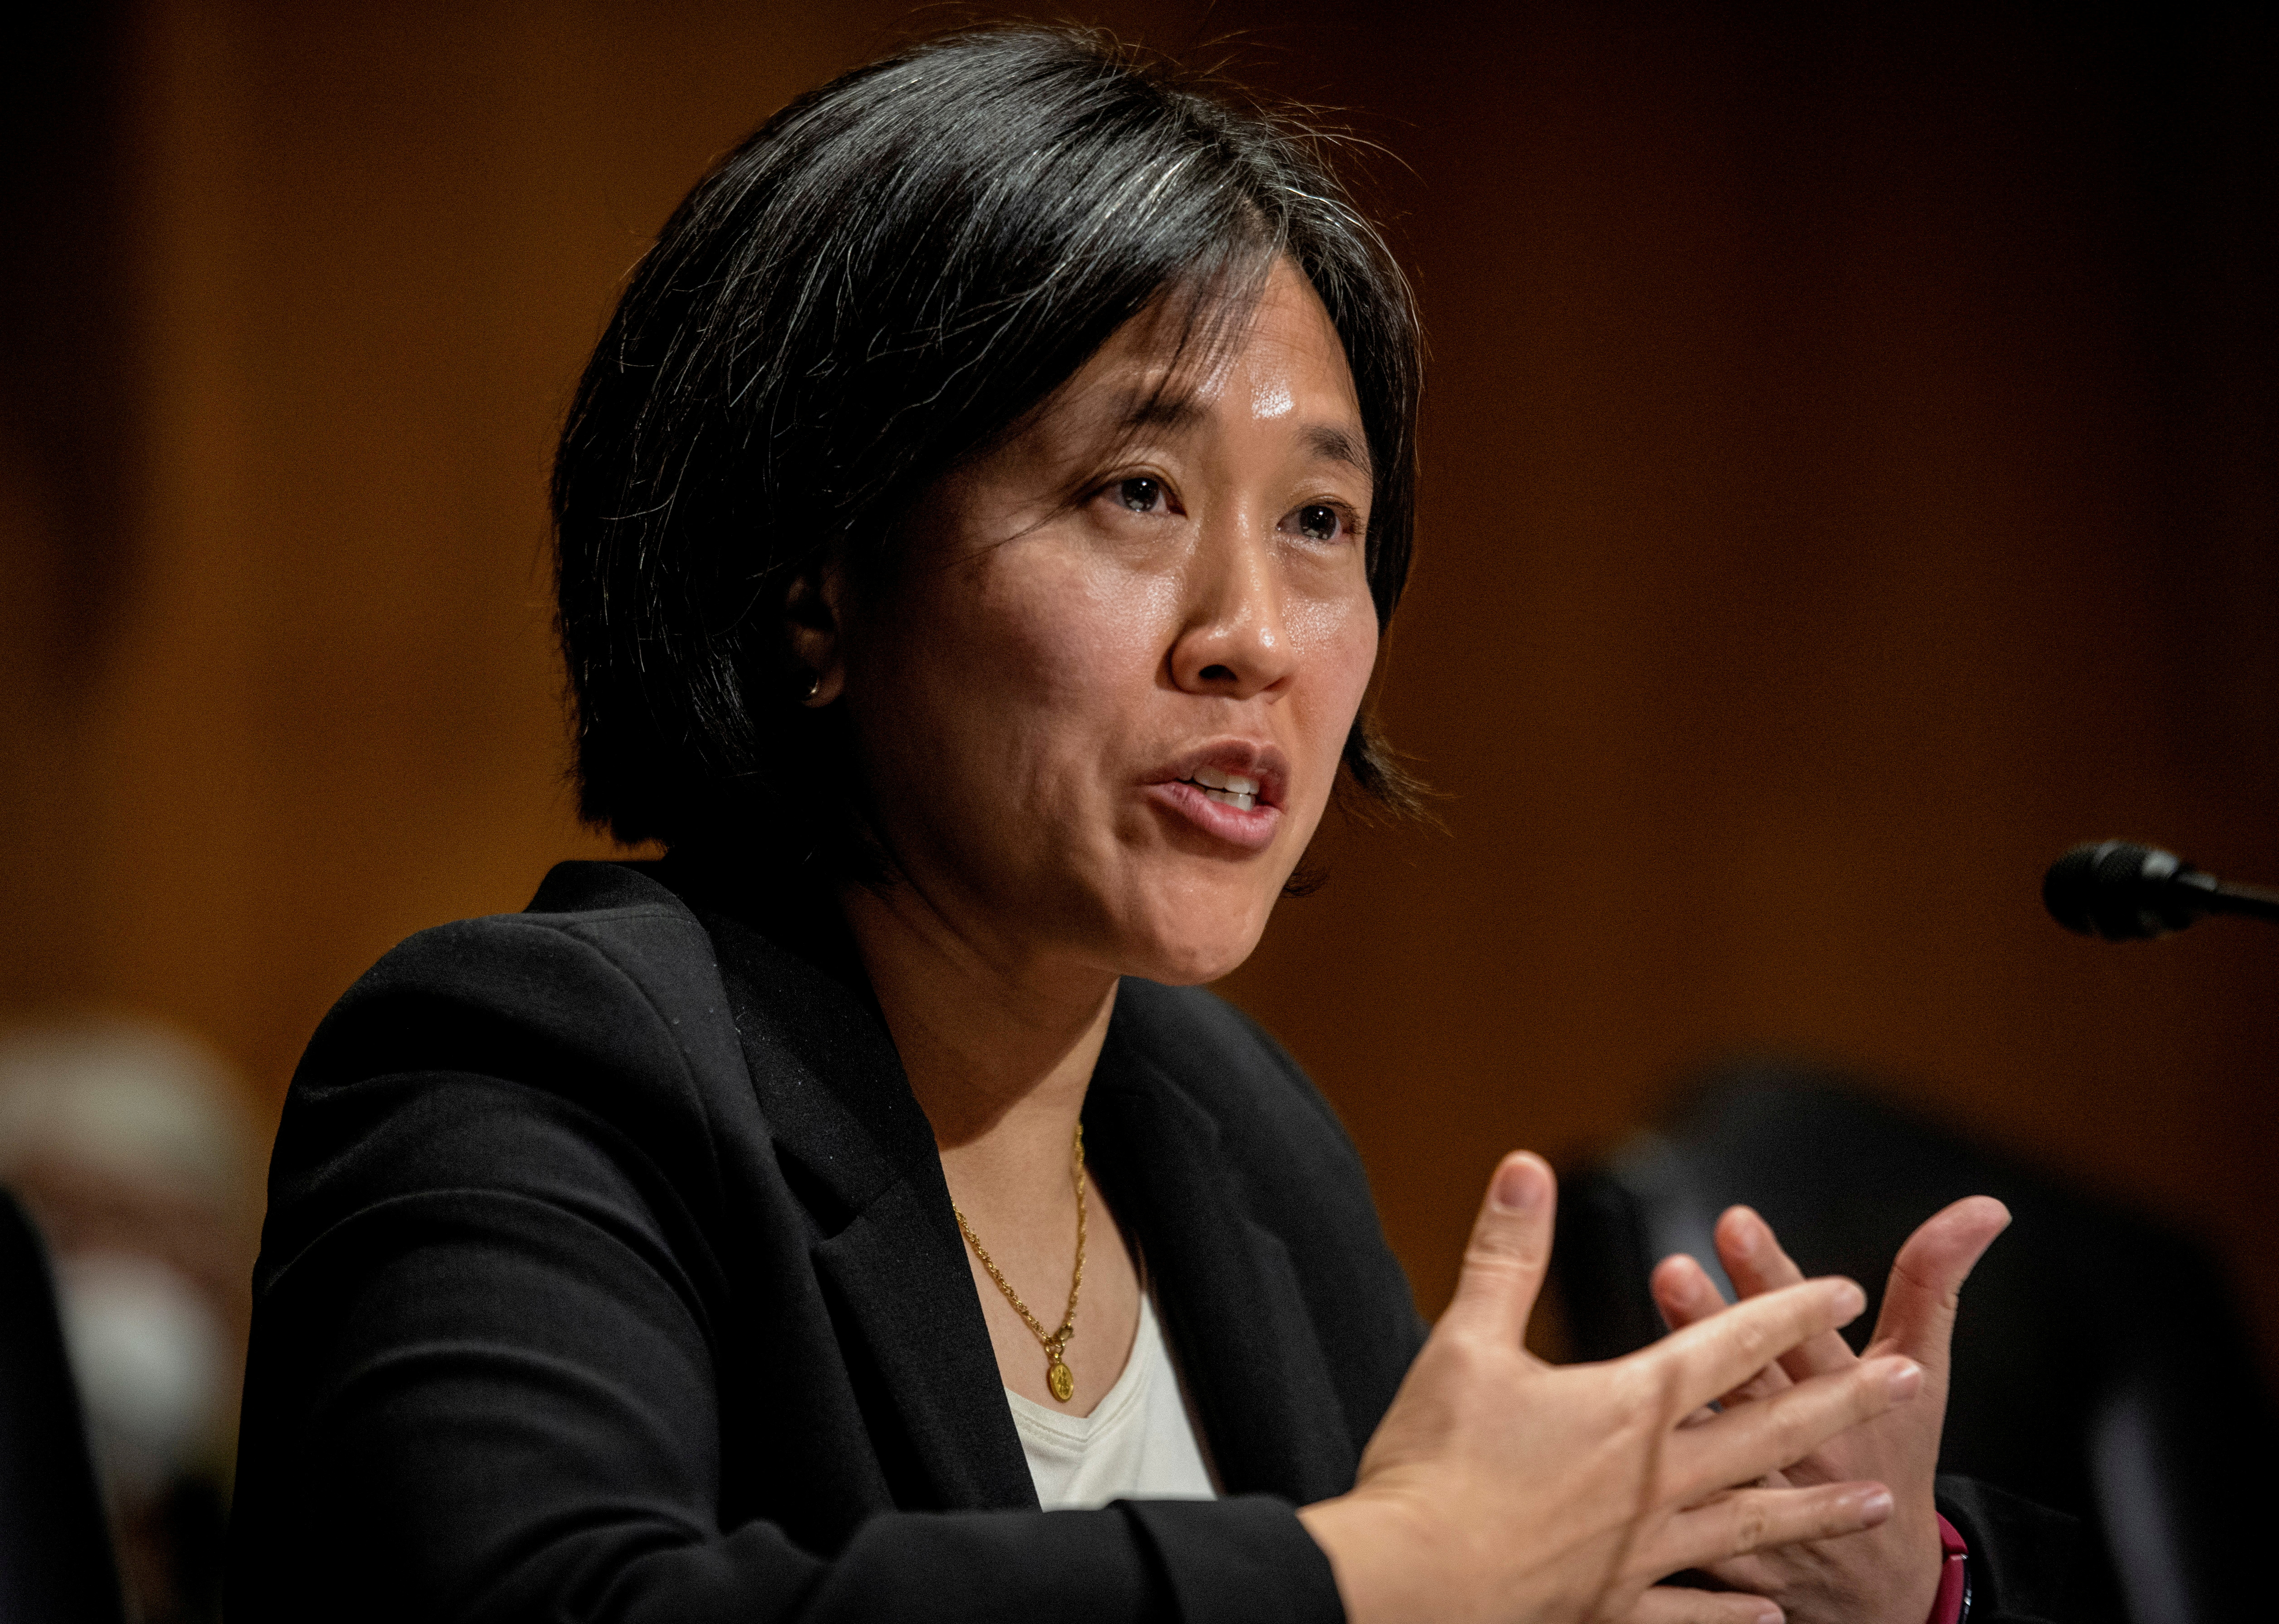 Katherine C. Tai addresses the Senate Finance committee hearings to examine her nomination to be United States Trade Representative, with the rank of Ambassador, in Washington, DC February 25, 2021. Bill O'Leary/Pool via REUTERS